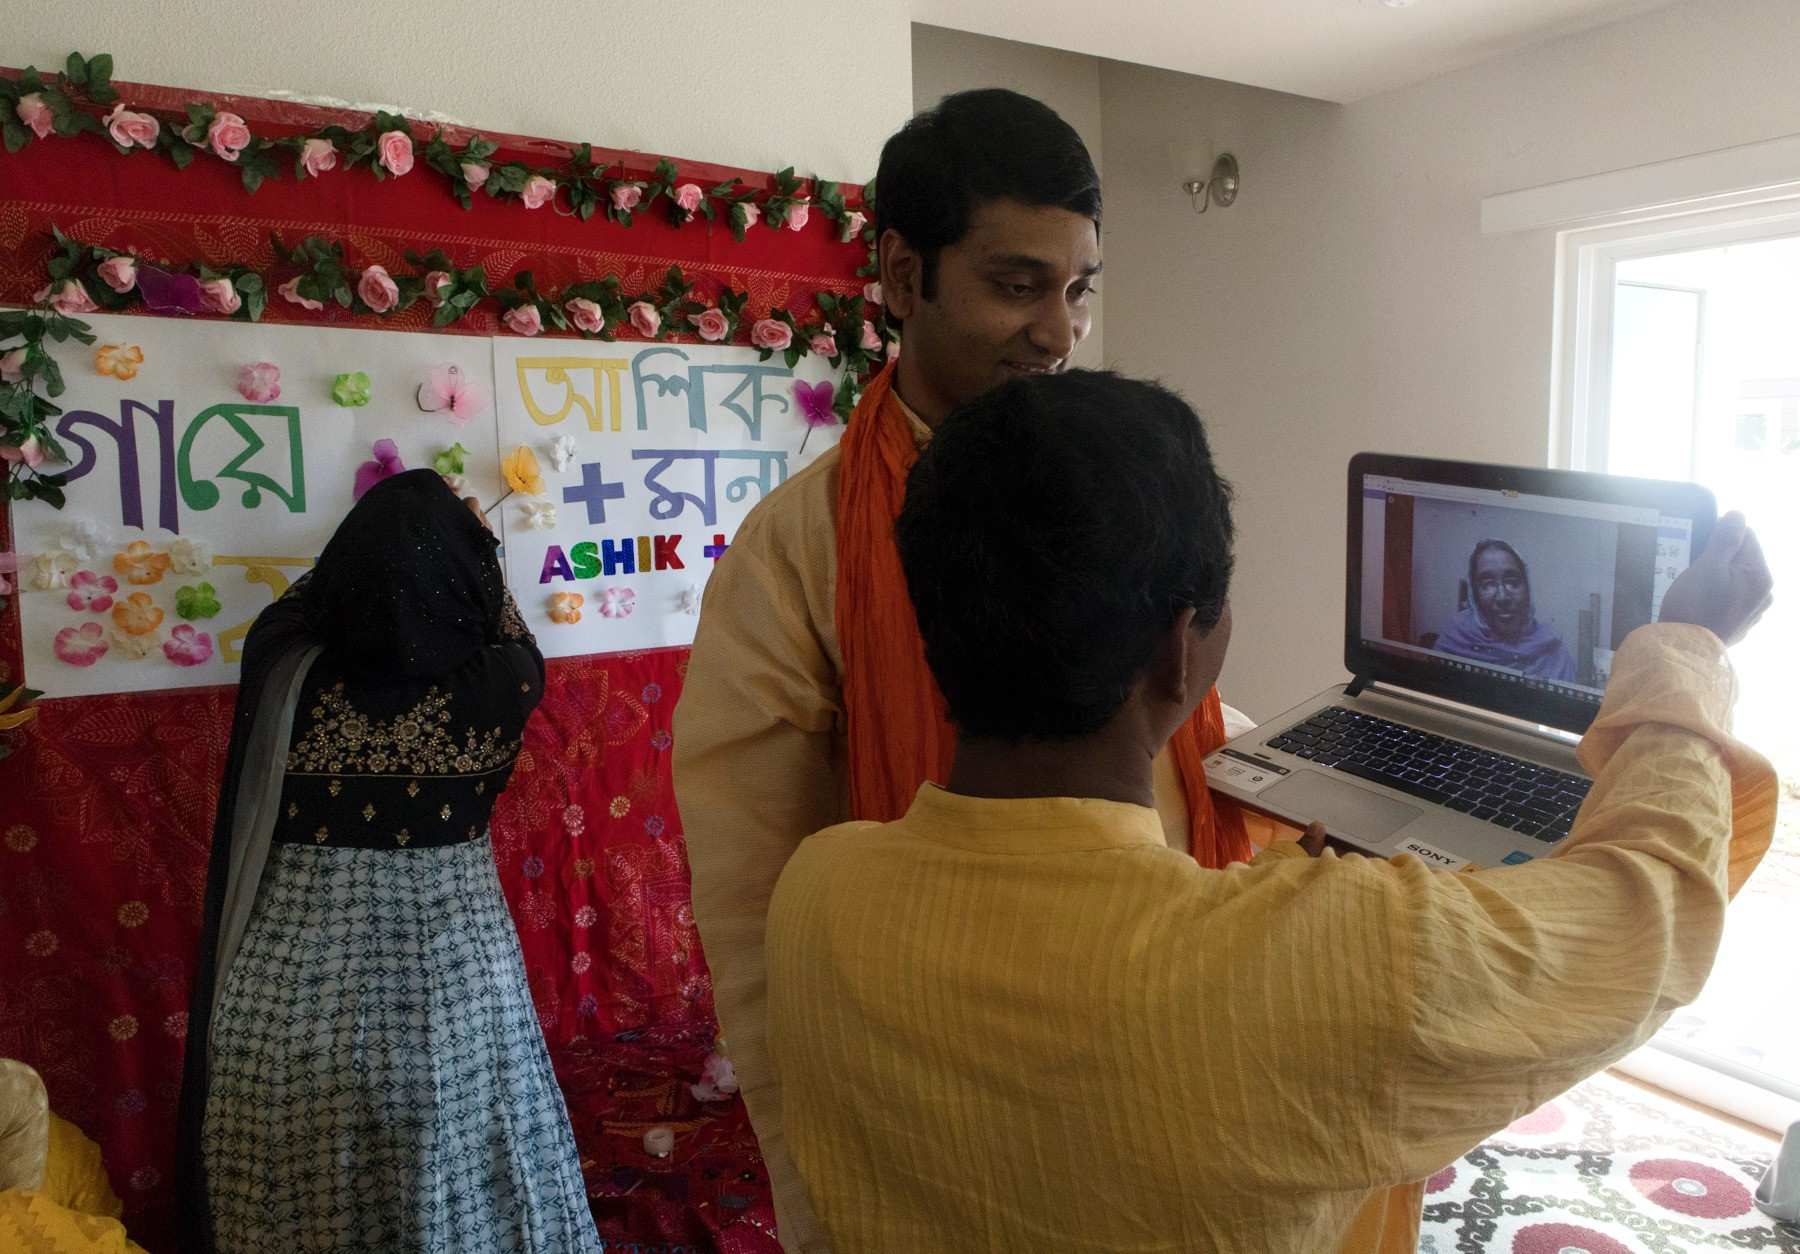 Groom's mother was unable to attend his son's wedding due to visa complications. She later joined through a video call to be a witness of the wedding ceremony.